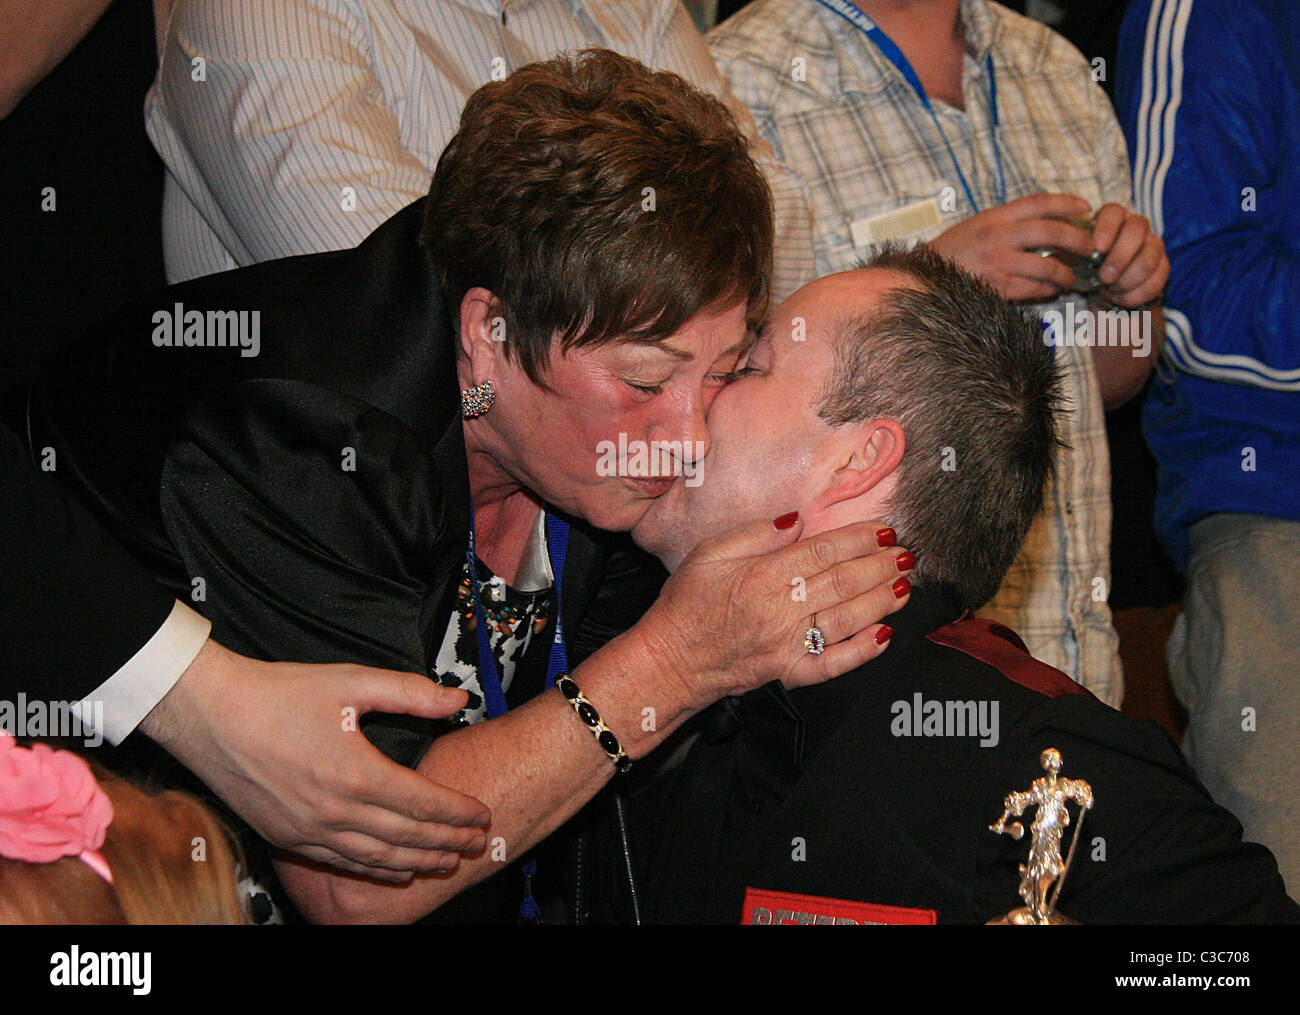 02.05.2011 -John Higgins with his mother Josie Higgins - Stock Image